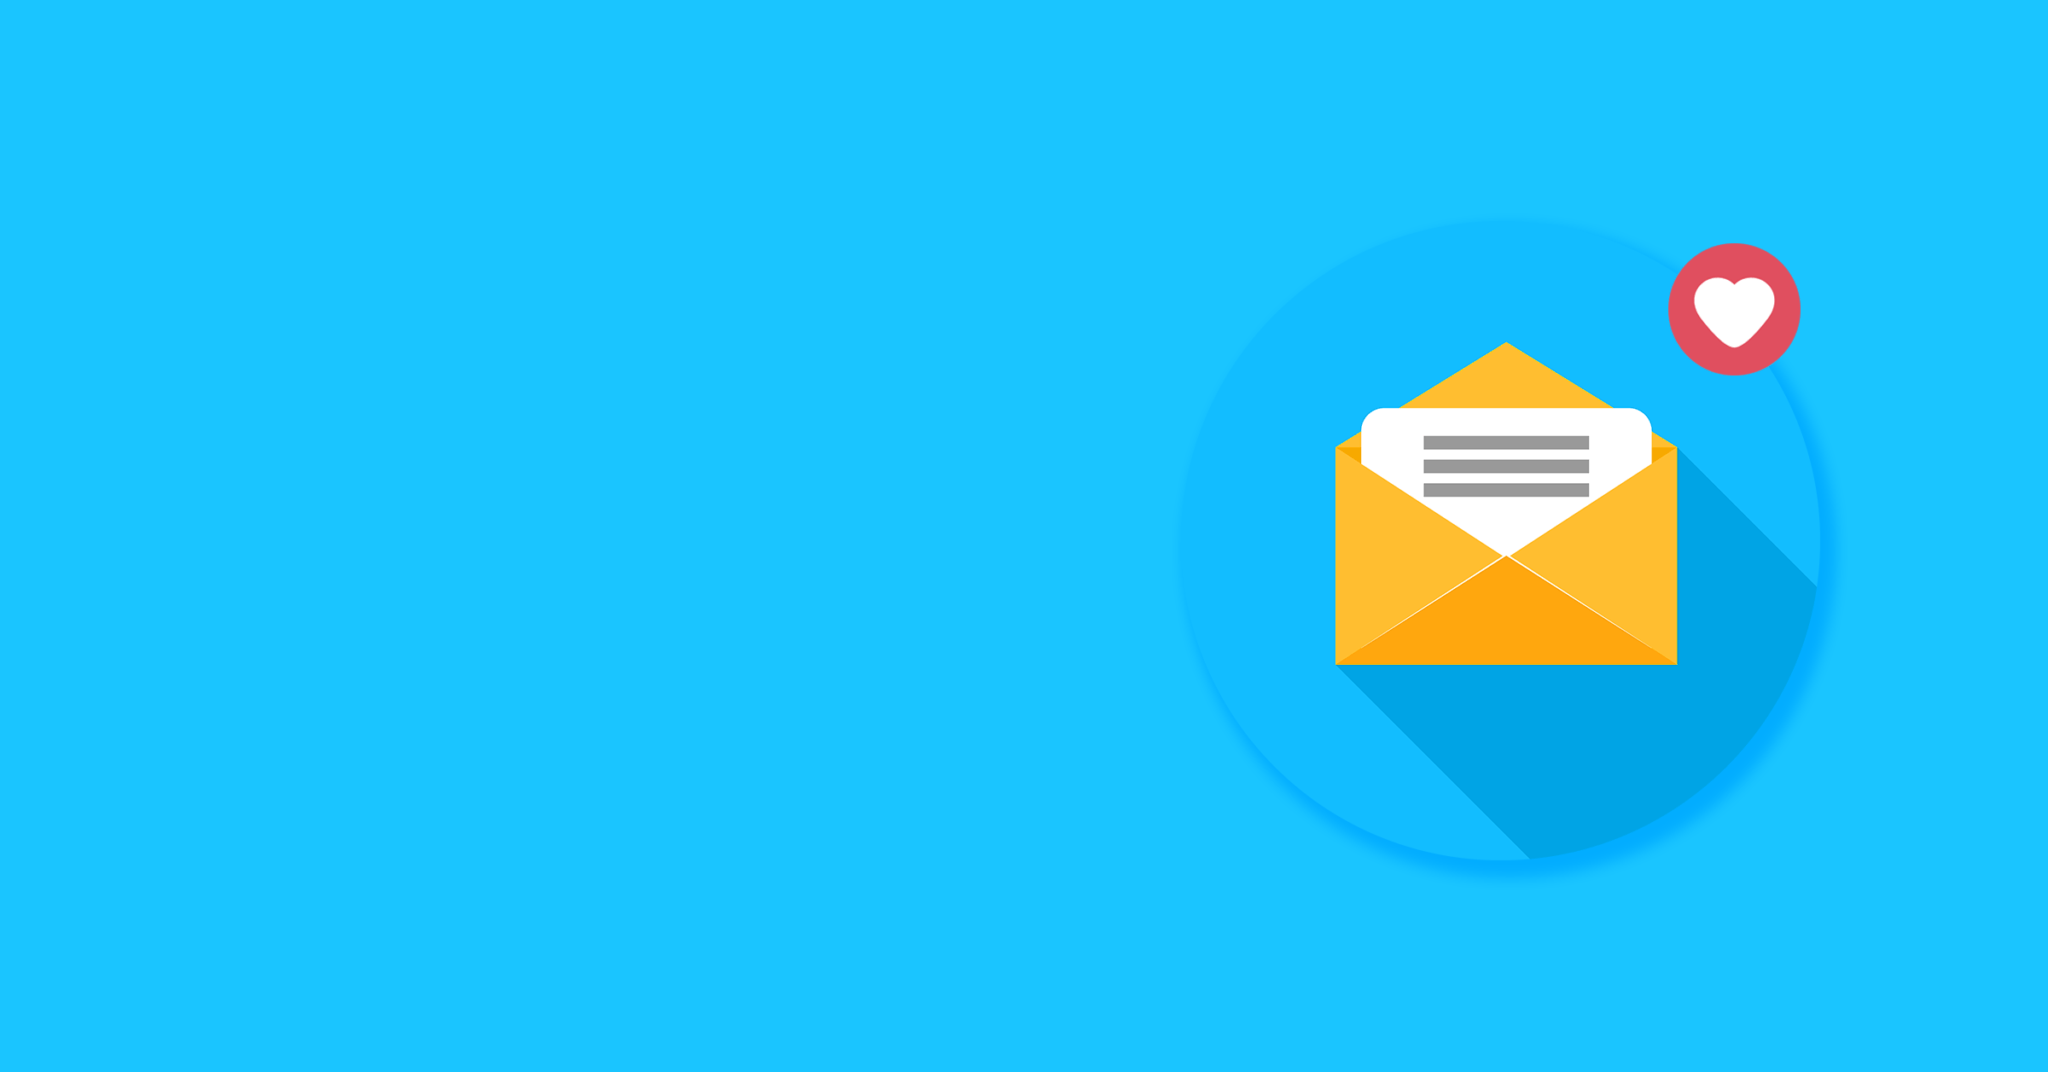 75% Off Online Voucher Code Printable Email Marketing Convertkit 2020